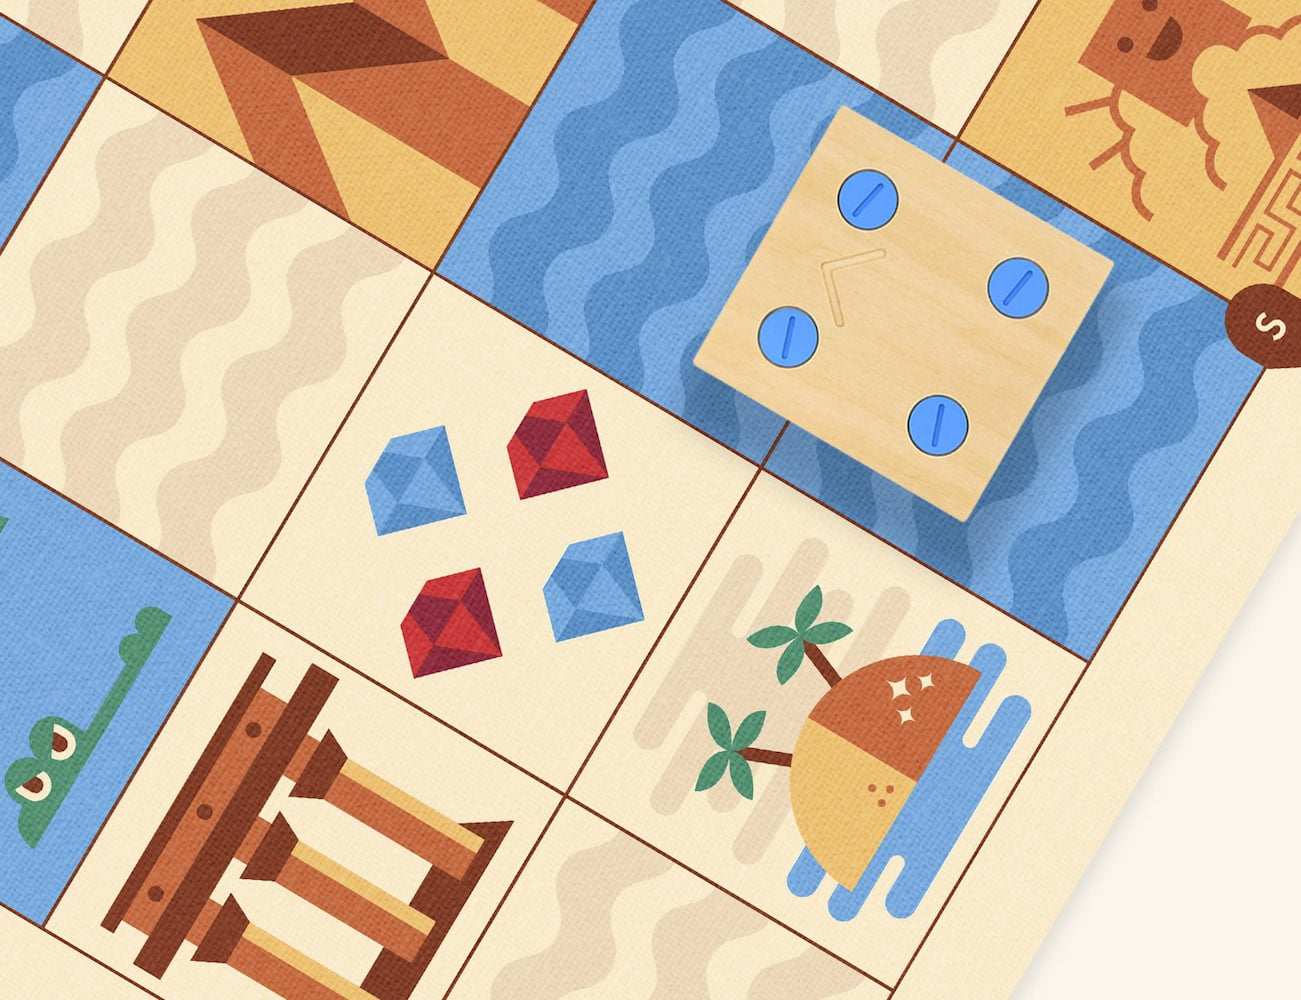 Coding for Ages 3+ Made Easy with the Cubetto